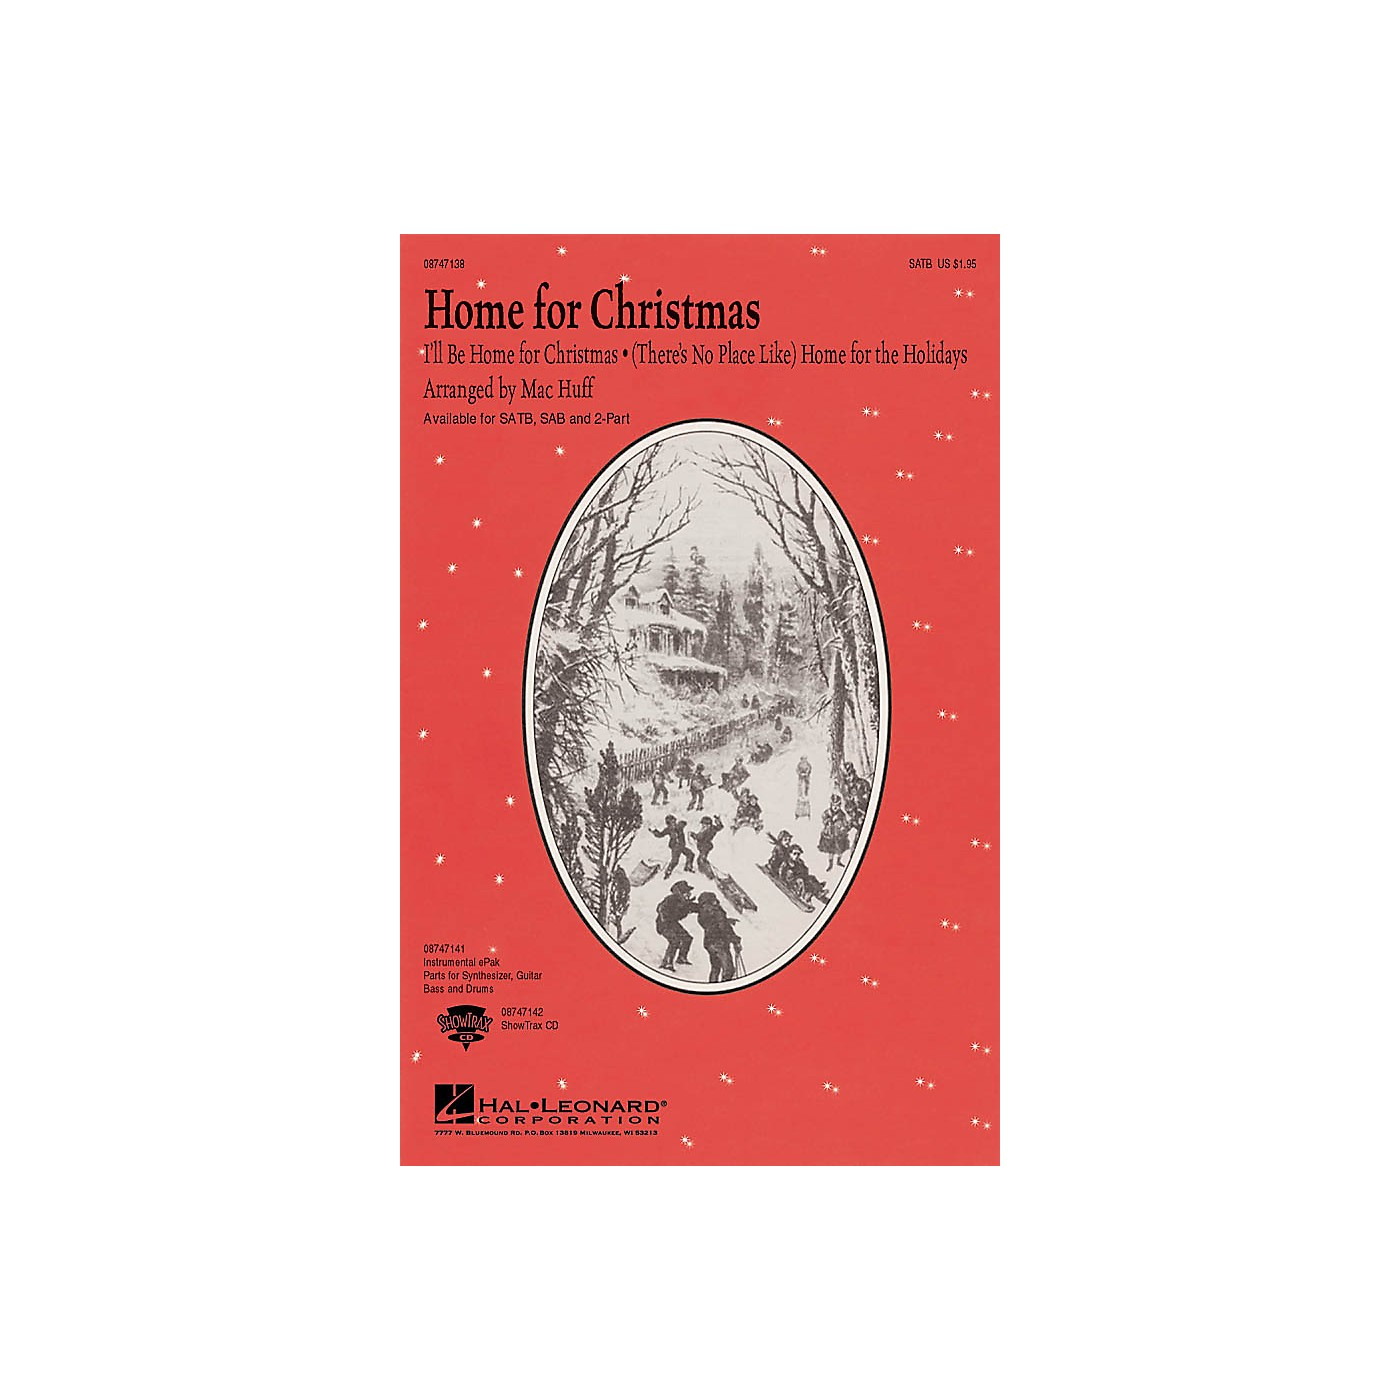 Hal Leonard Home for Christmas (Medley) 2-Part Arranged by Mac Huff thumbnail